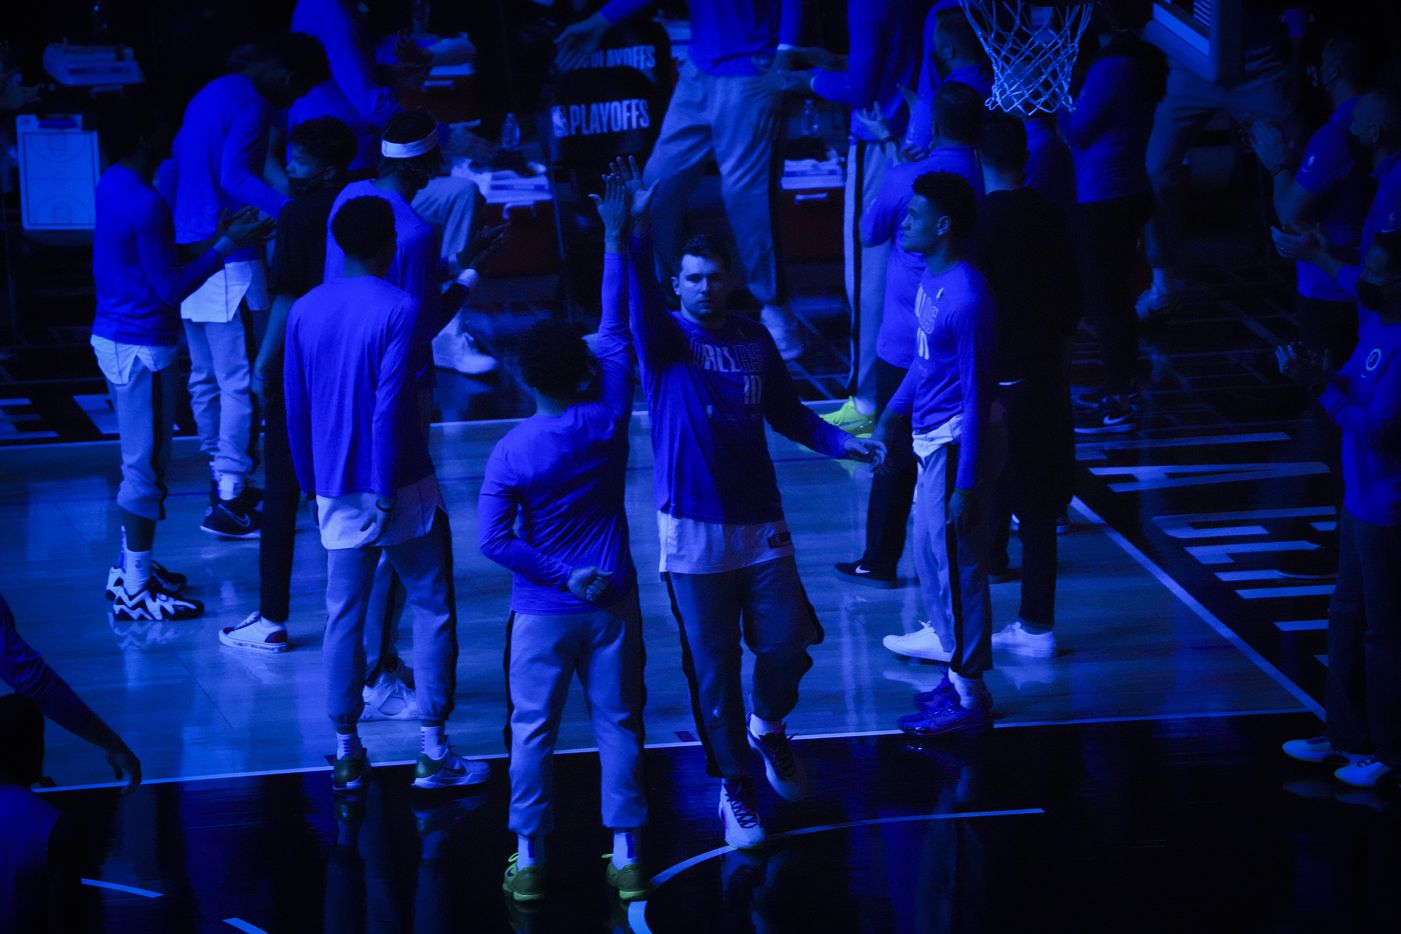 Dallas Mavericks guard Luka Doncic takes the floor for Game 7 of an NBA playoff series against the LA Clippers at the Staples Center on Sunday, June 6, 2021, in Los Angeles.